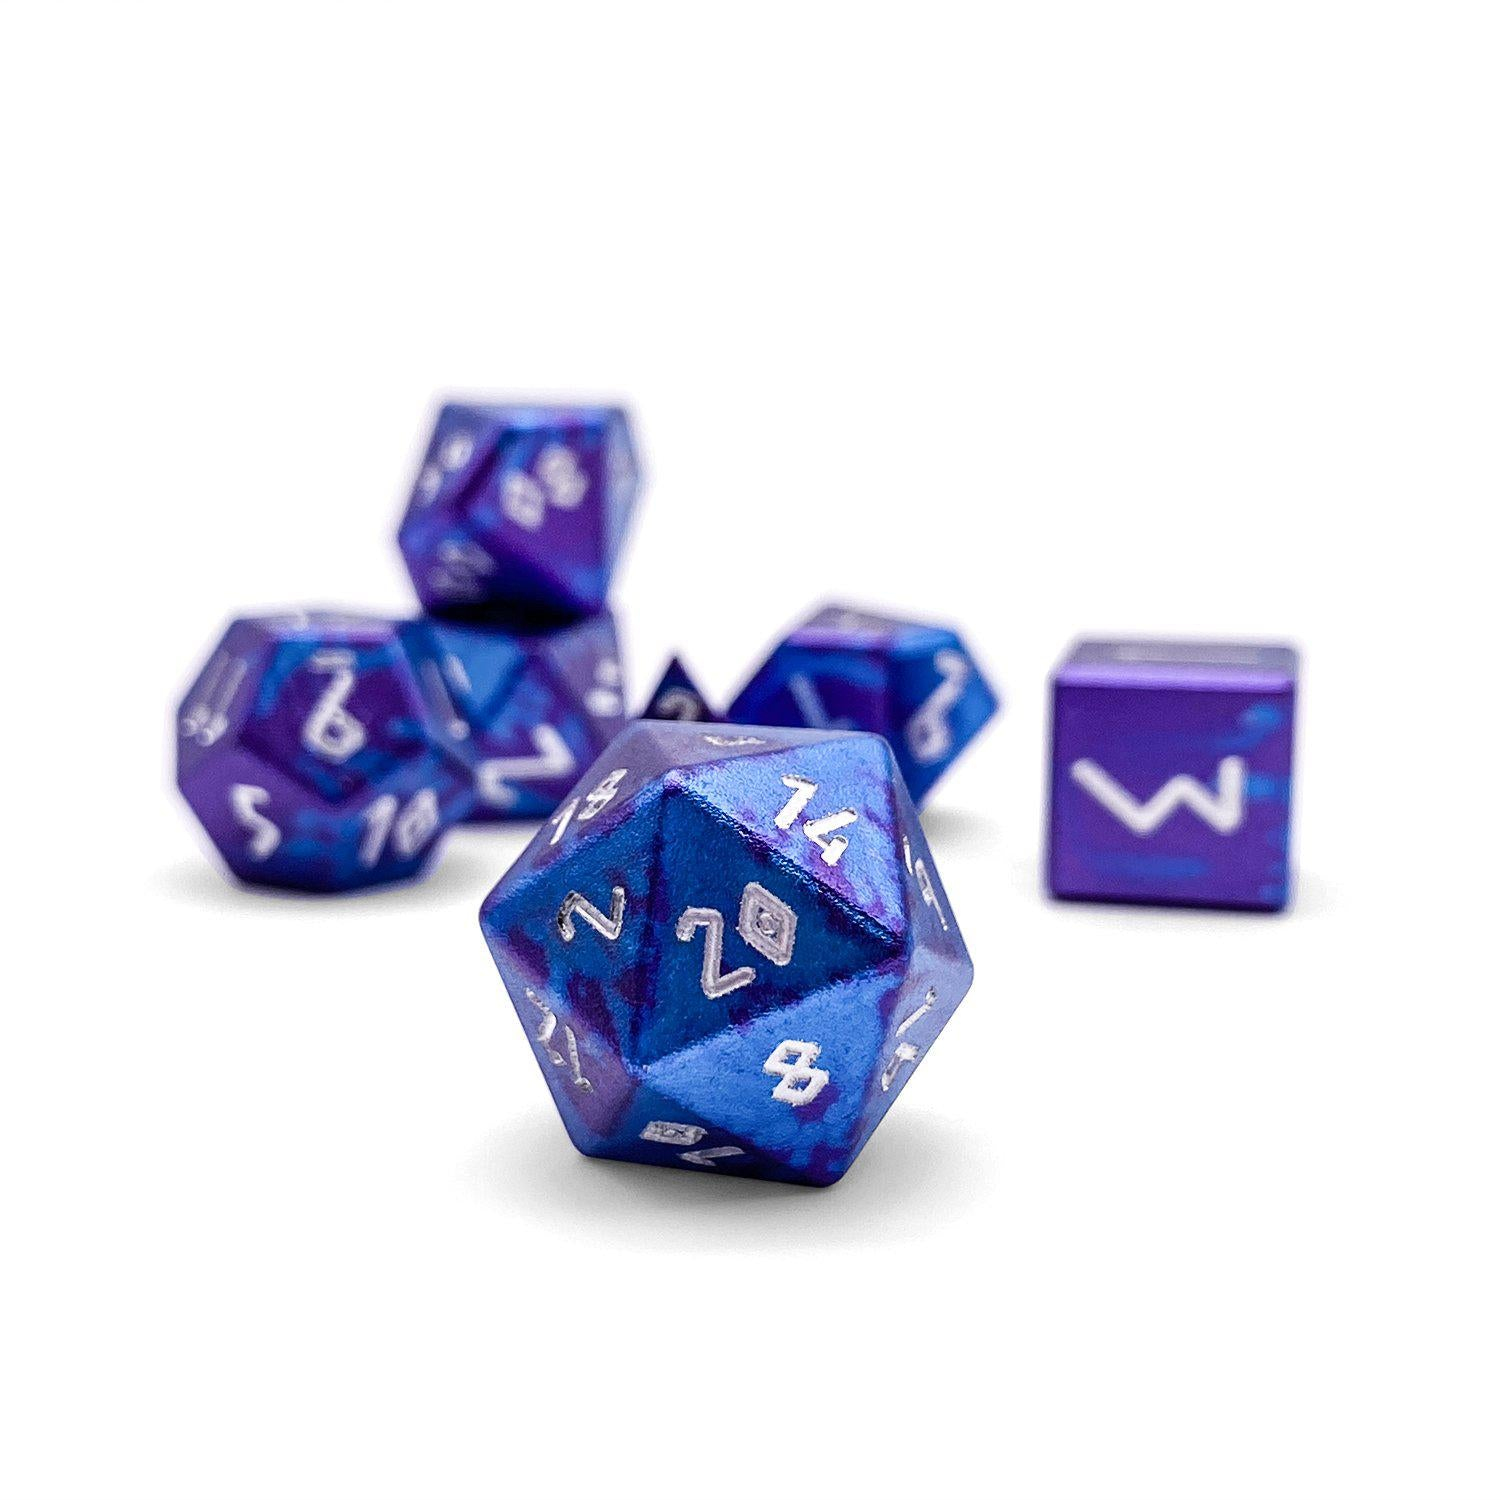 Time Warp - Wondrous Dice Set of 7 RPG Dice by Norse Foundry Precision Polyhedral Dice Set